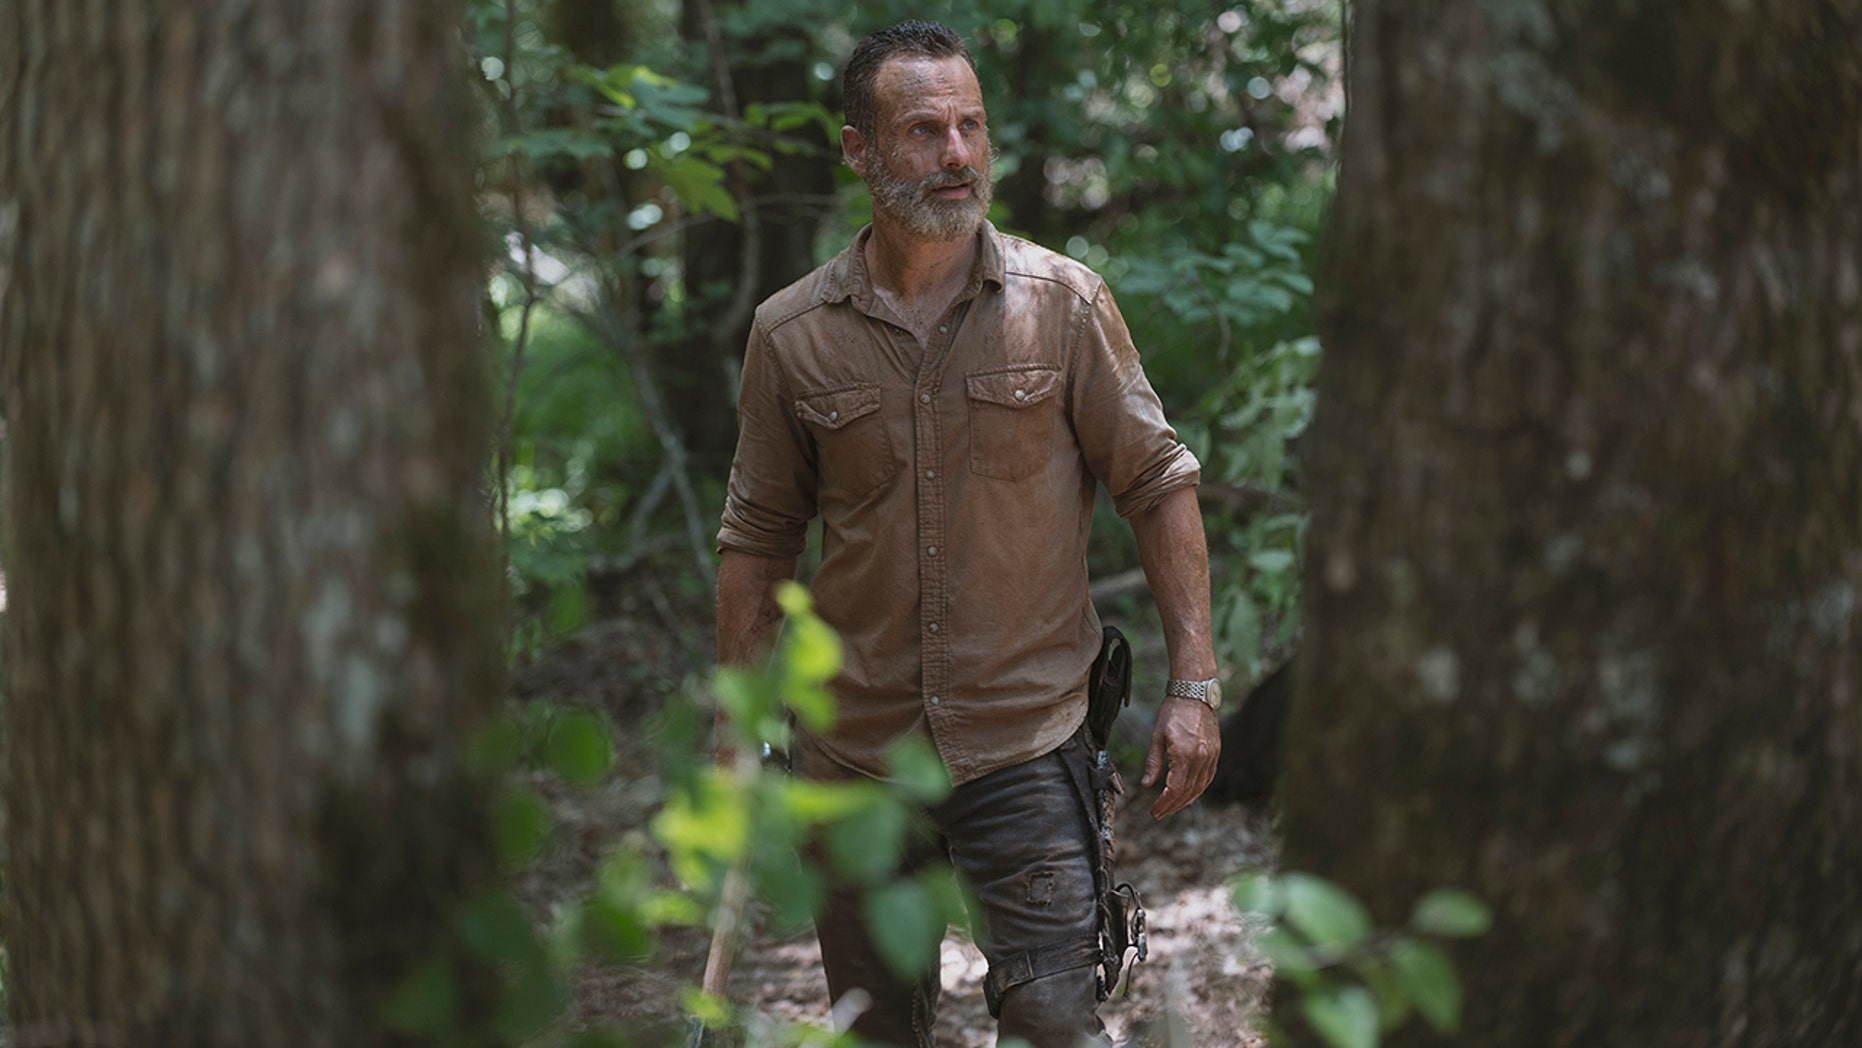 Andrew Lincoln as Rick Grimes in 'The Walking Dead' Season 9, Episode 4.